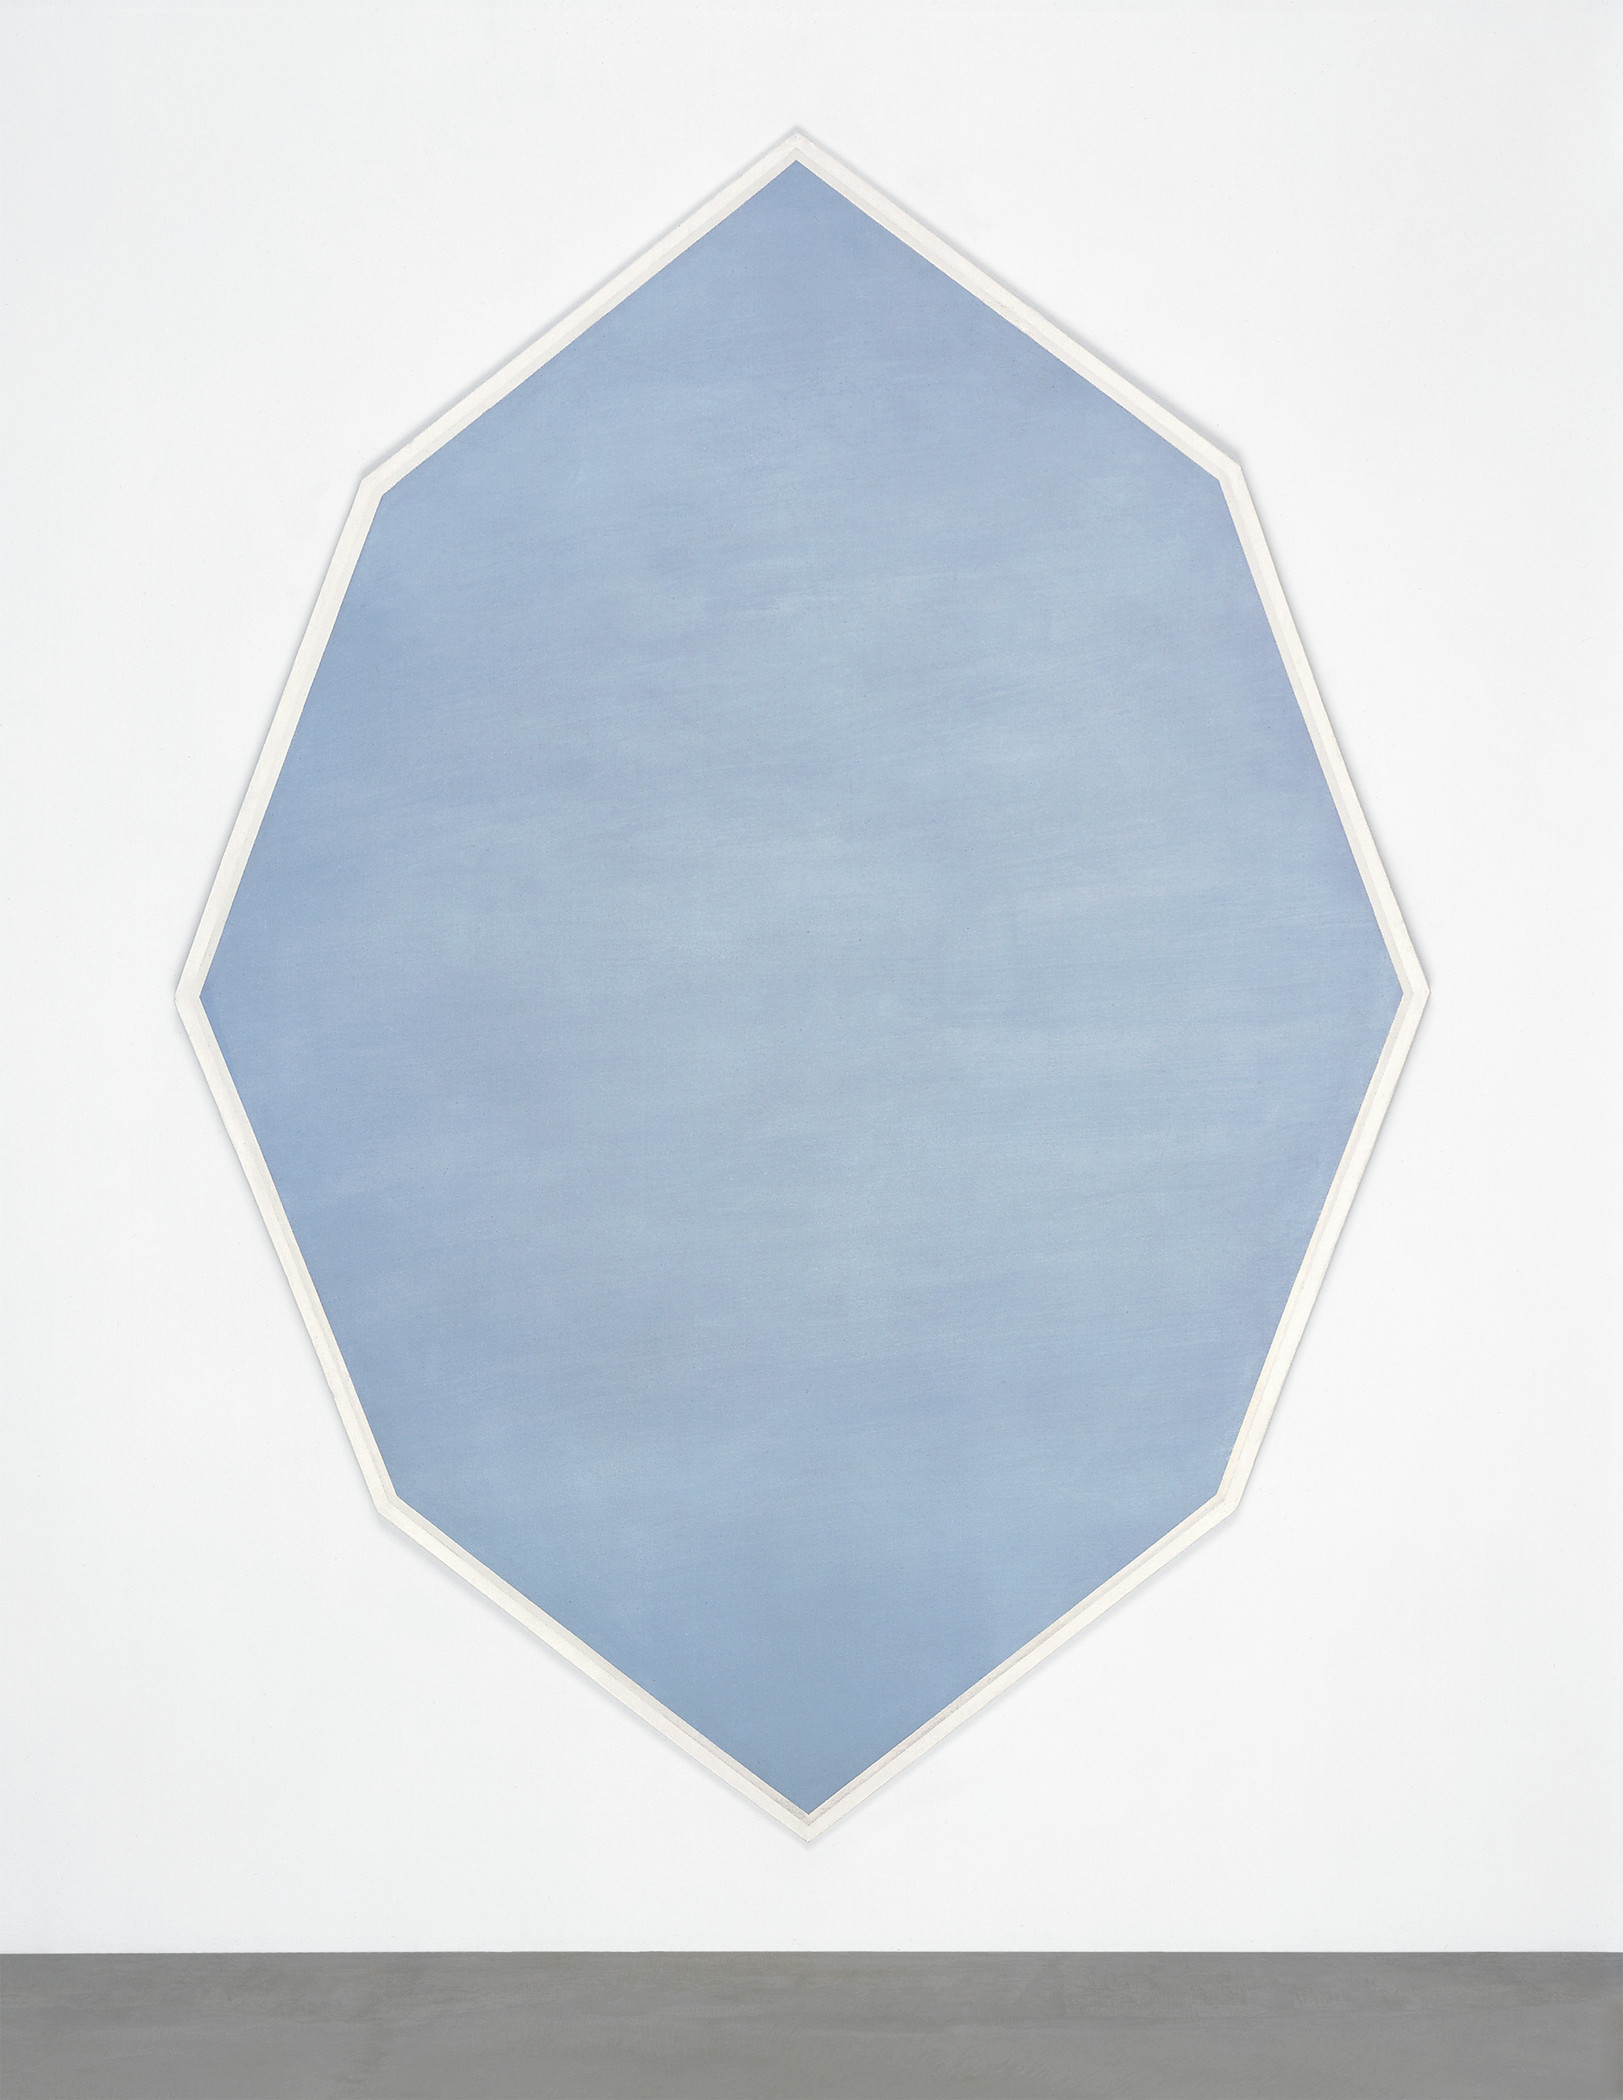 Mary Corse, Untitled (Octagonal Blue), 1964, collection of the artist, courtesy Kayne Griffin Corcoran, Lisson Gallery, and Pace Gallery, © Mary Corse, photograph © Mary Corse